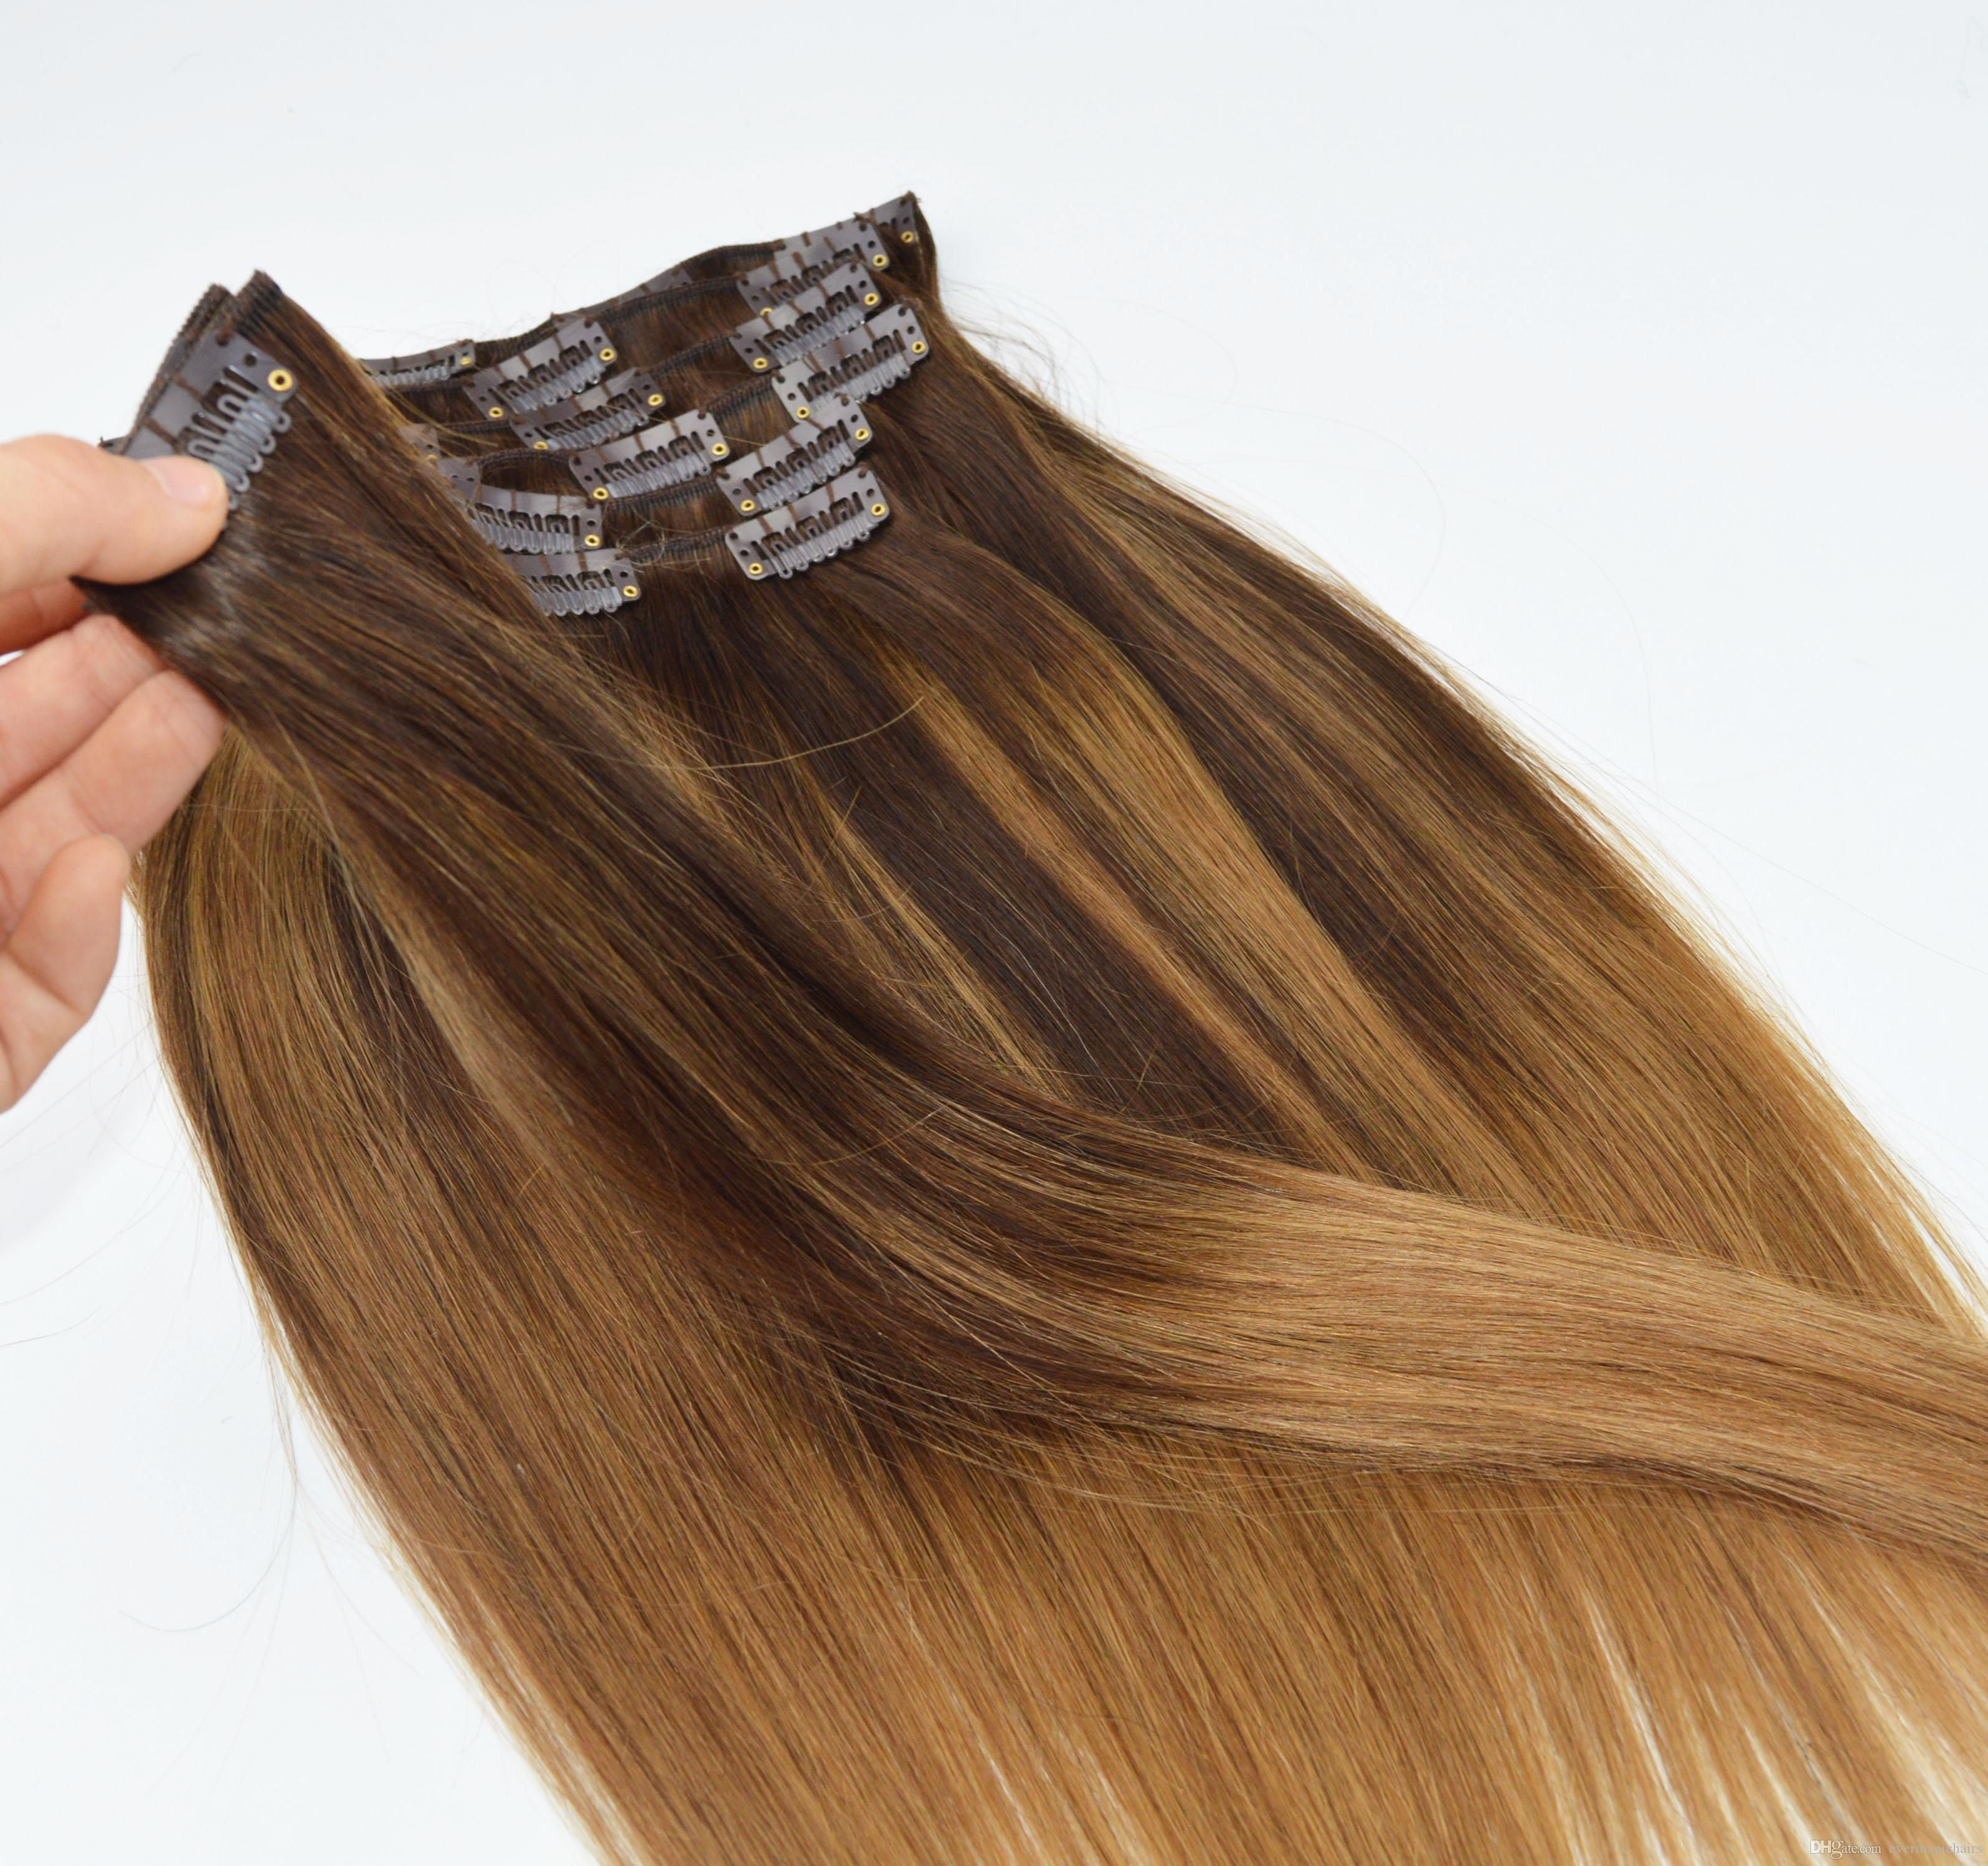 Image result for hair extension set Image result for hair extension set